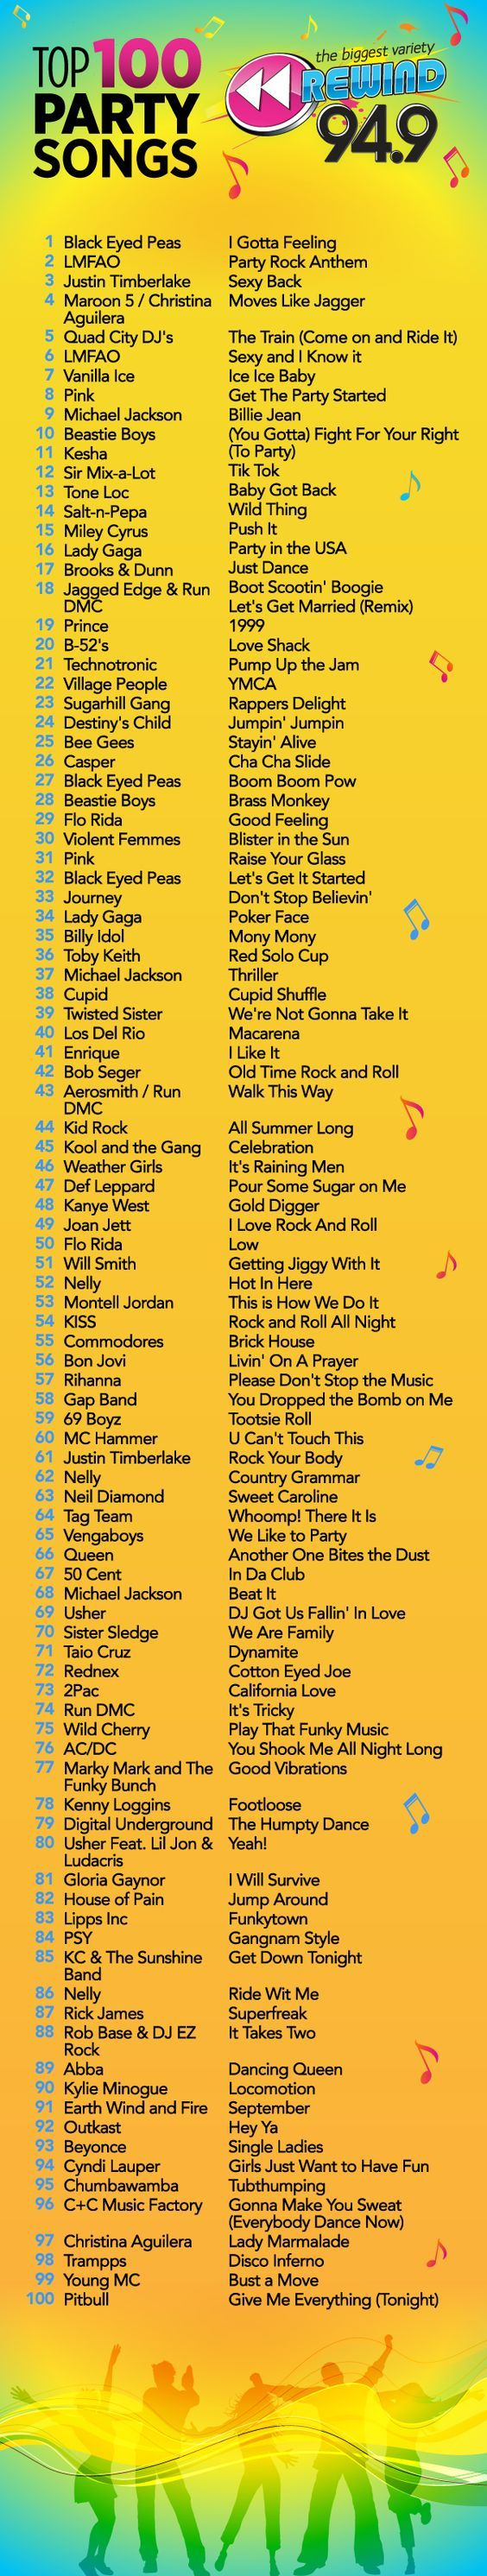 Top 100 Party Songs @Amanda Snelson Taylor: might be a good list to pick from for your New Year's party: